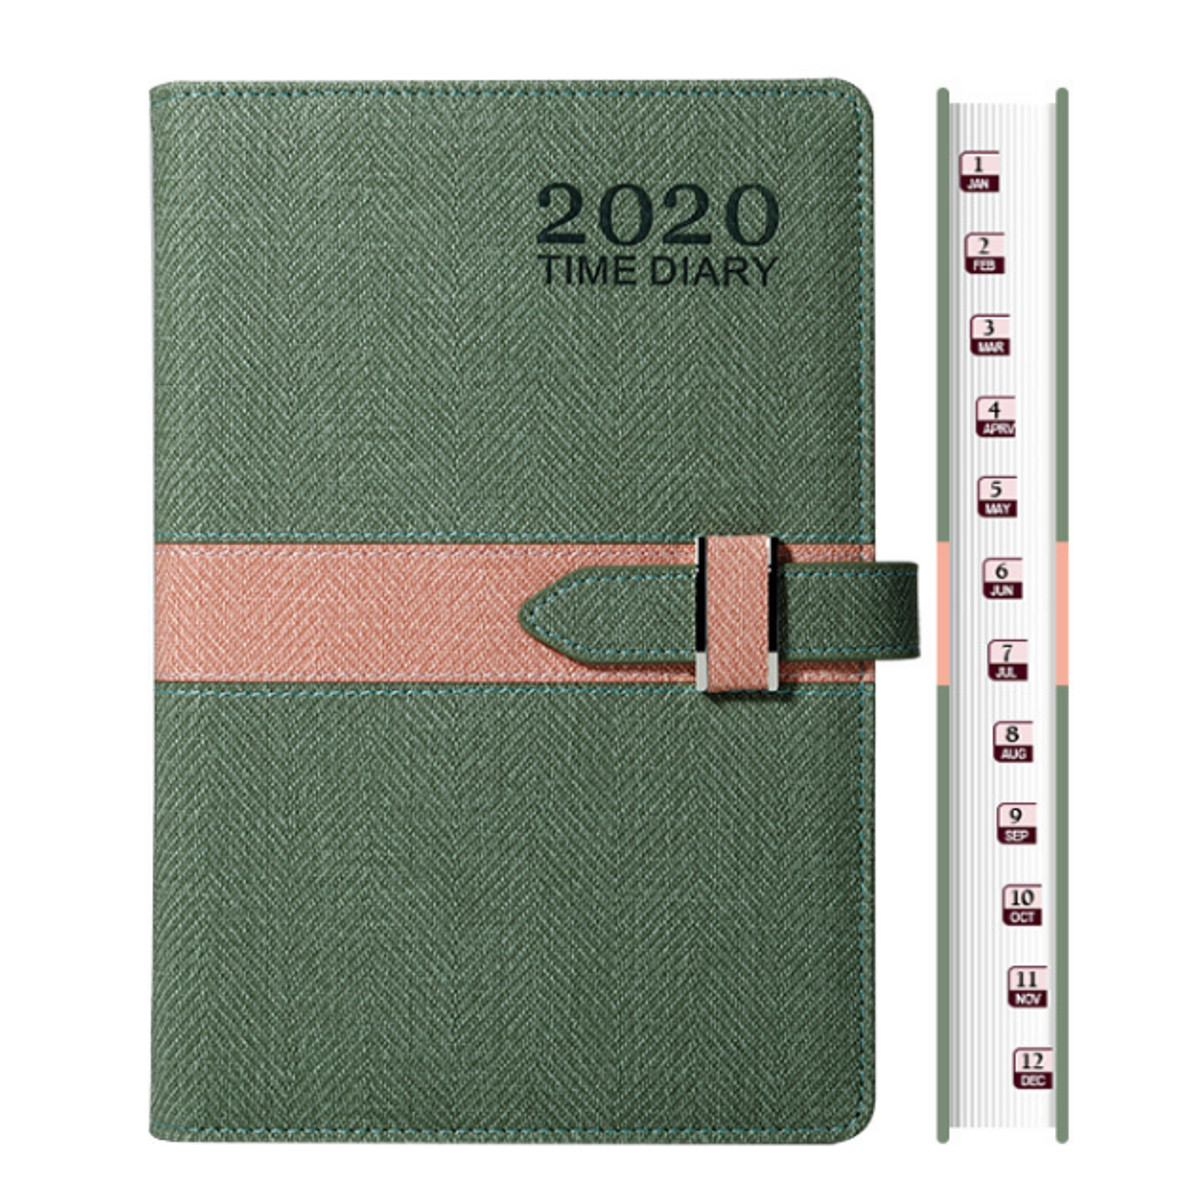 2020 Year Calendar Monthly Planner Notebook Diary Business Office Journal Gifts